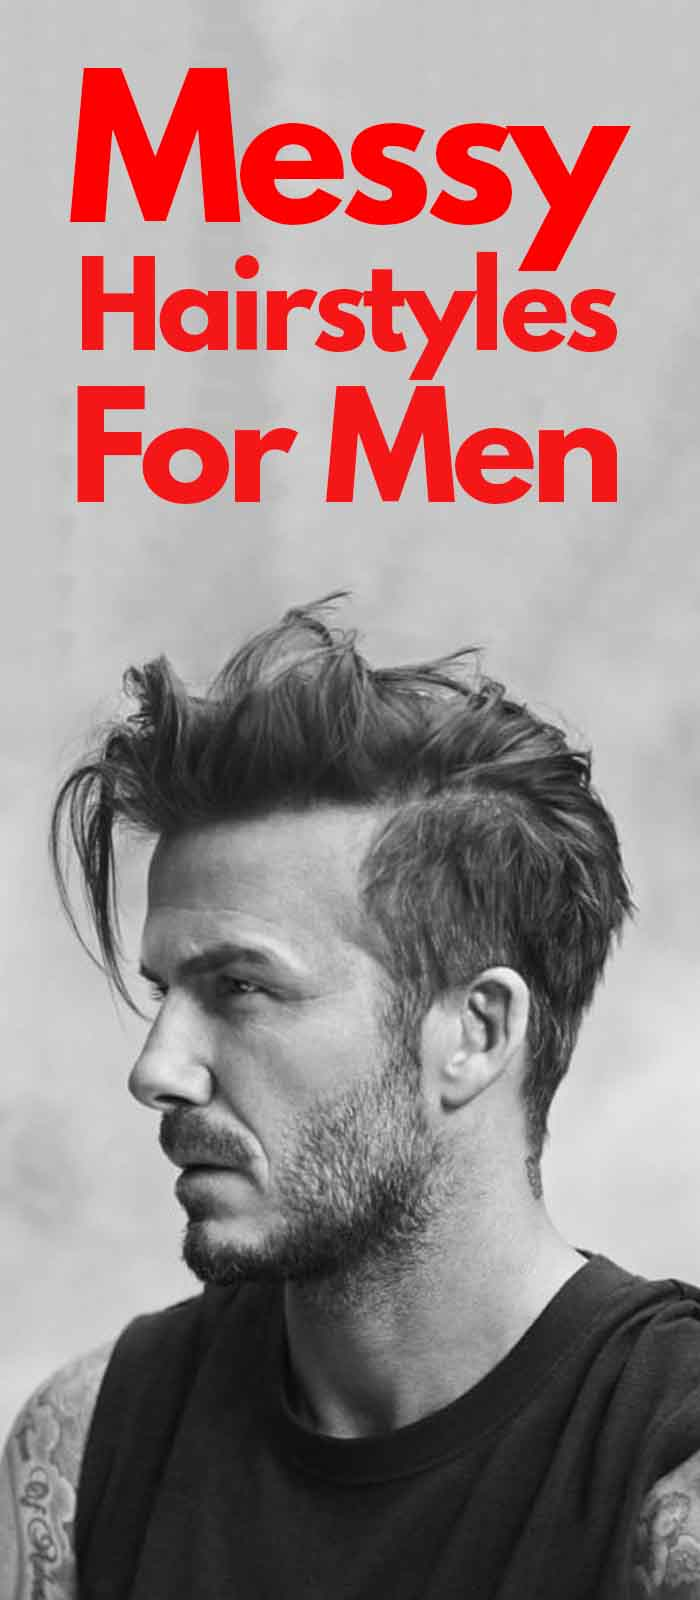 Messy Hairstyles For Men 2019!